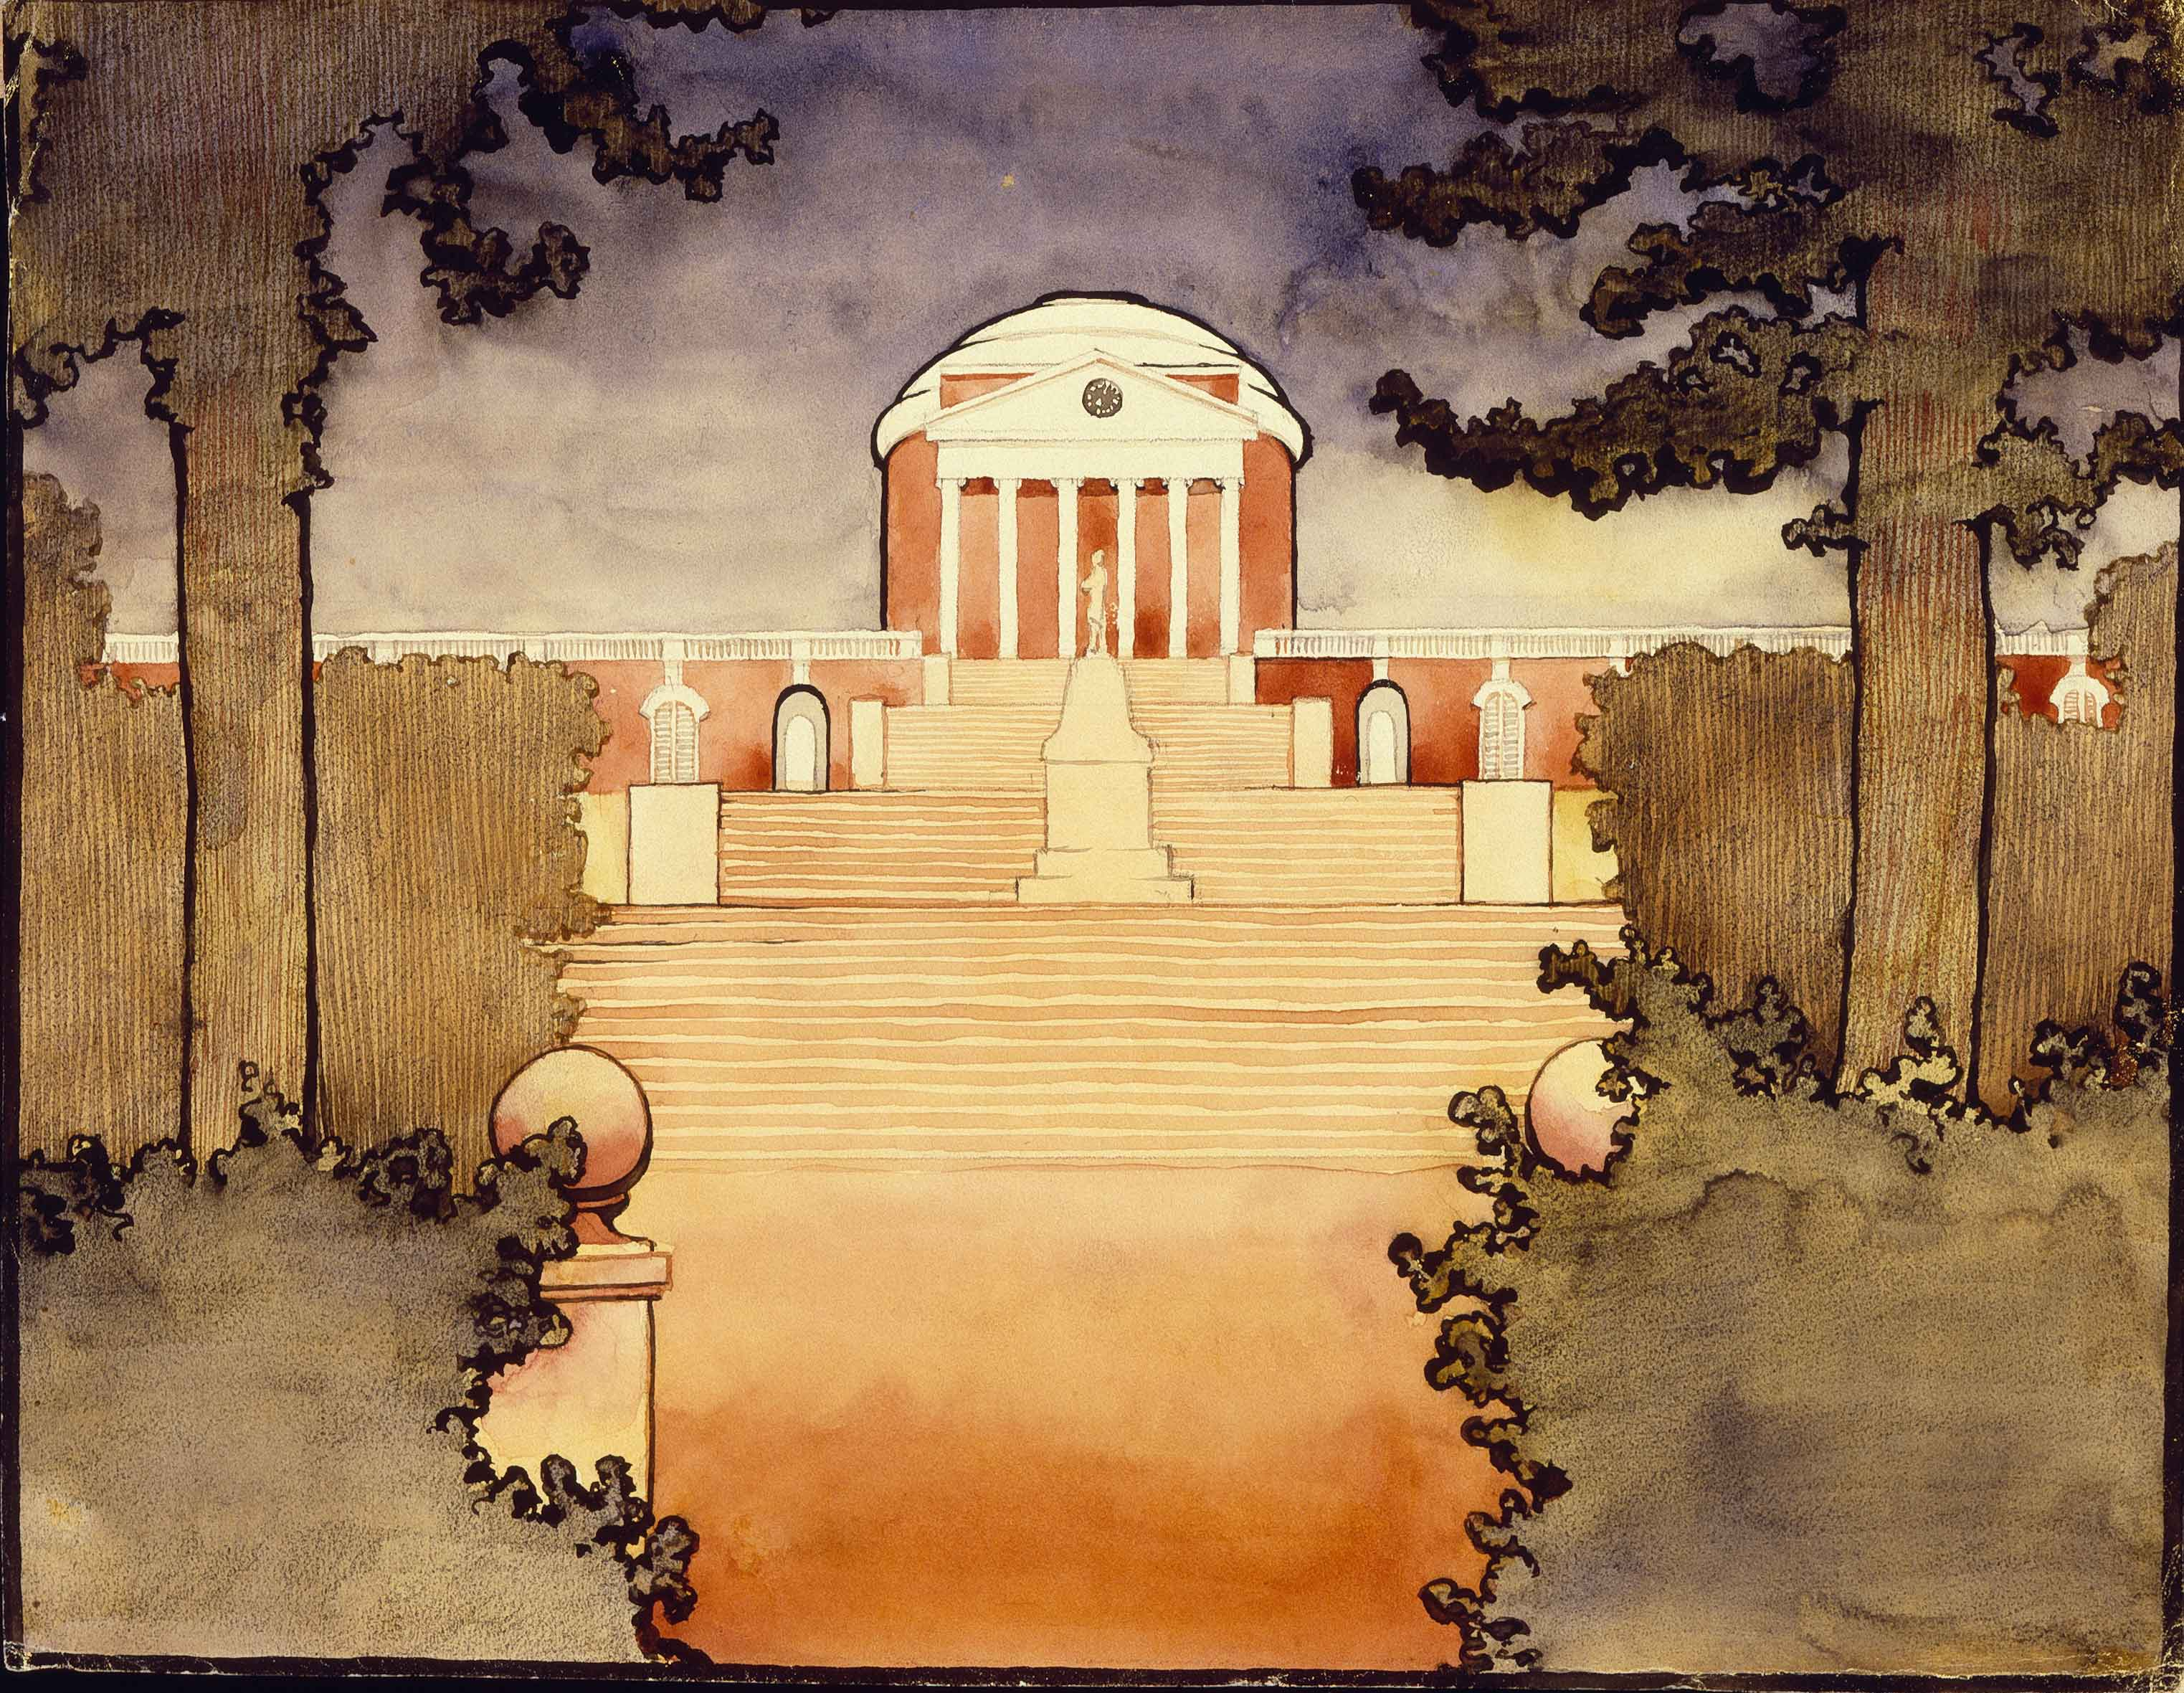 Untitled (Rotunda -University of Virginia) Scrapbook U of V, 1912-1914 Georgia O'Keeffe Watercolor on paper 11 7/8 x 9 (30.16 x 22.86) Georgia O'Keeffe Museum Gift of The Georgia O'Keeffe Foundation (2006.05.608) Copyright Georgia O'Keeffe Museum